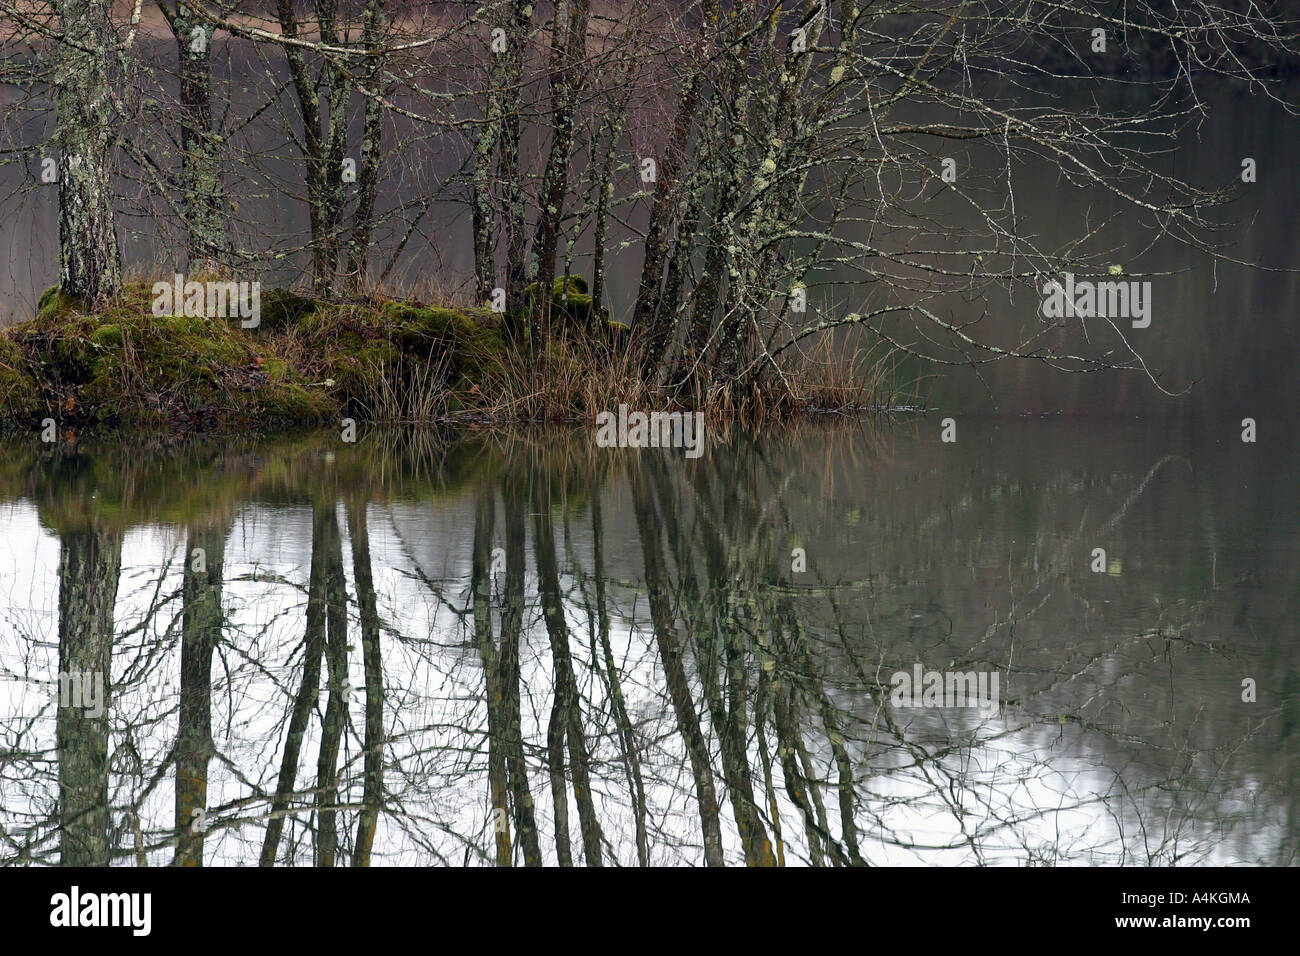 France, Jura, trees and pond in winter - Stock Image